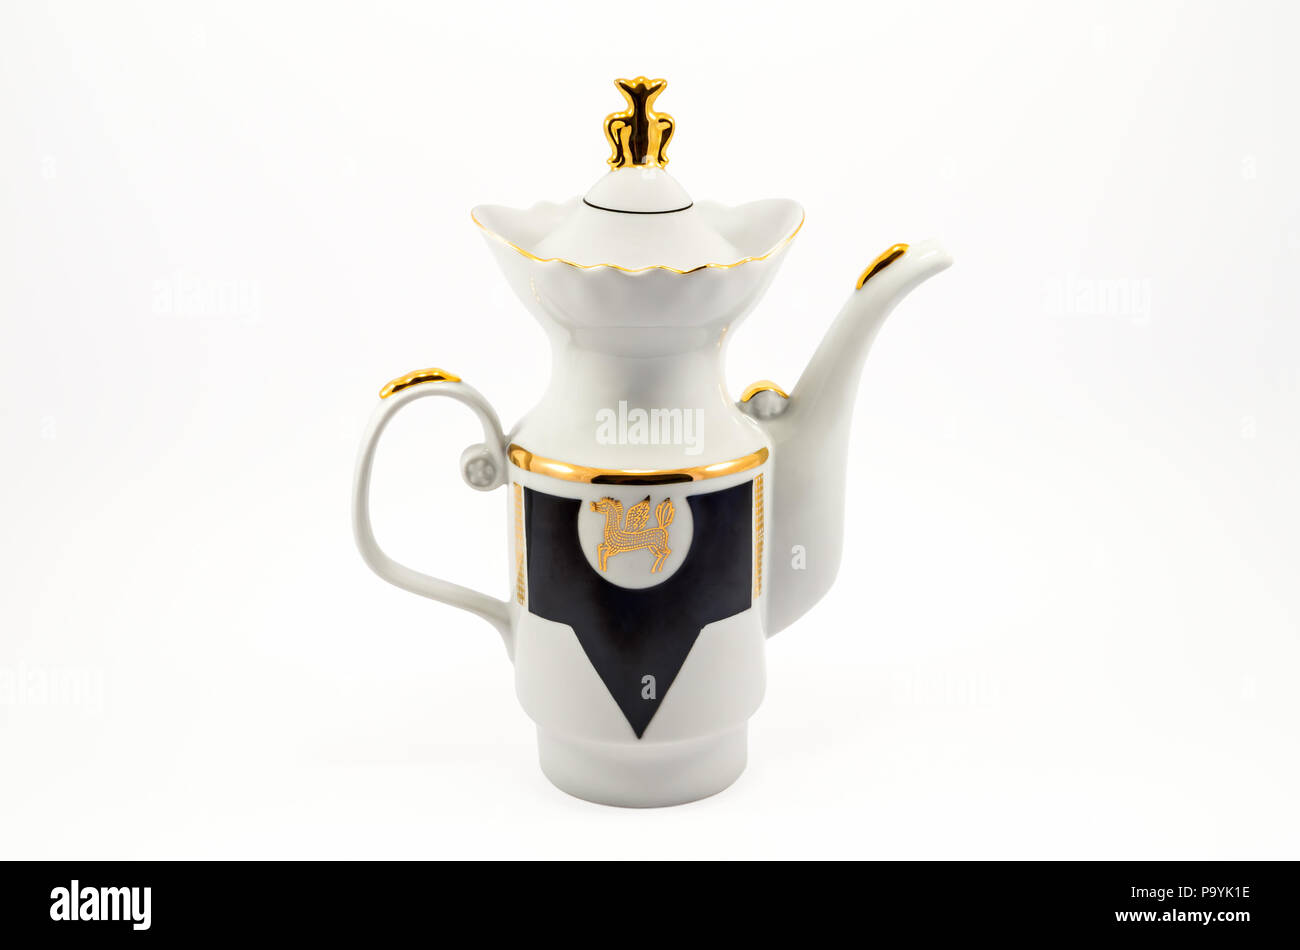 Old-fashioned porcelain coffee pot isolated on white background - Stock Image